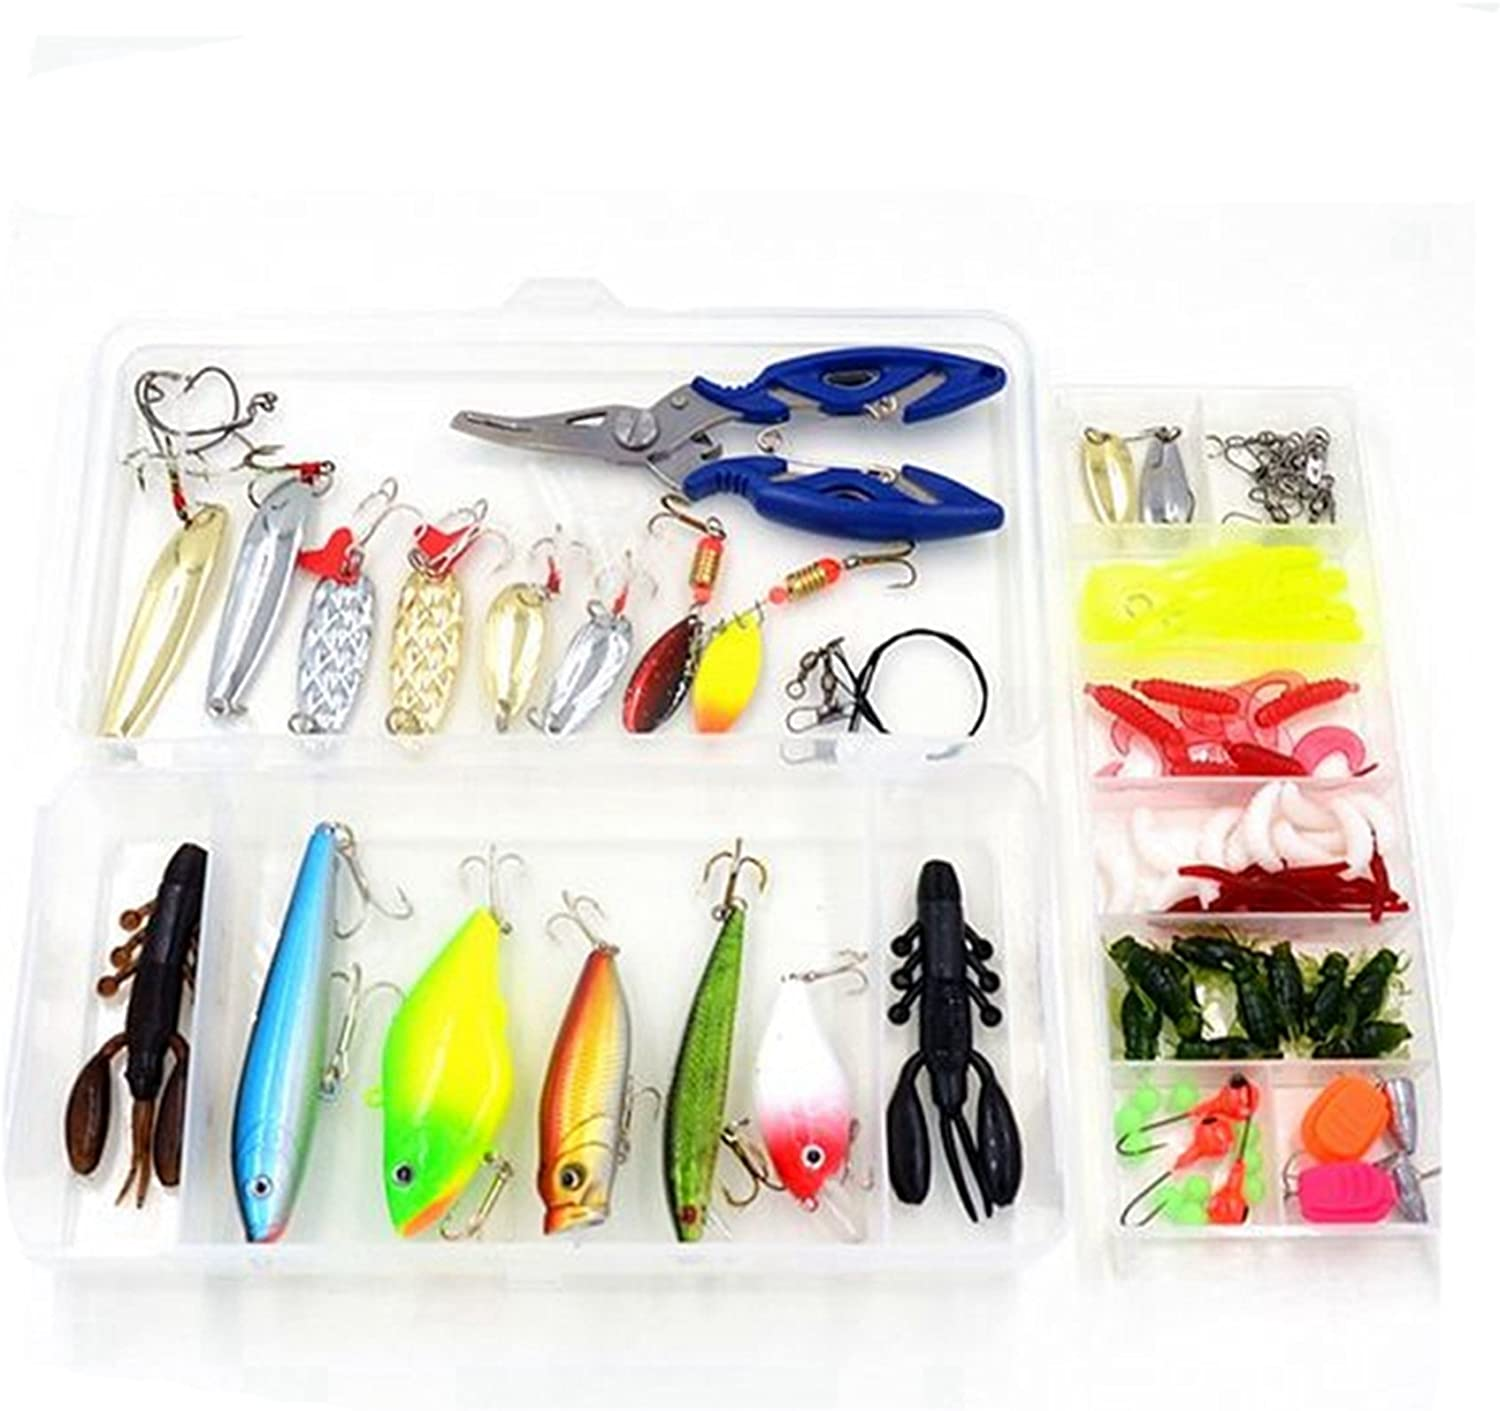 Salmon Isafish Fishing Lures Set Jigs Fishing Baits Kit for Bass Trout Topwater Lures Including Spoon Lures CrankBait Soft Plastic Worms